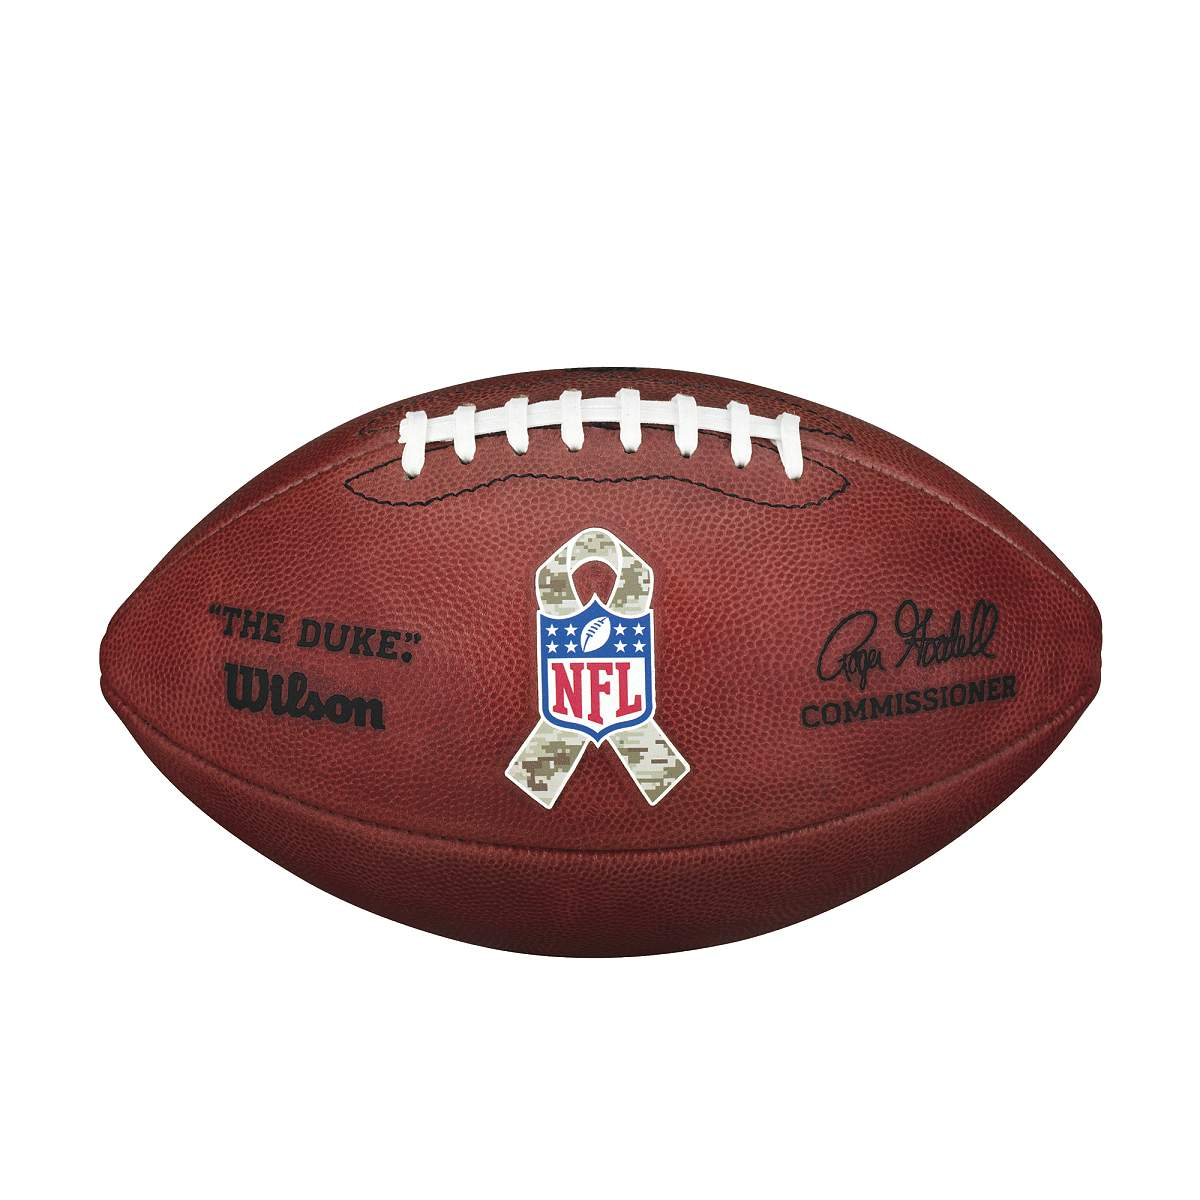 18b4f996725 NFL SALUTE TO SERVICE FOOTBALL - OFFICIAL